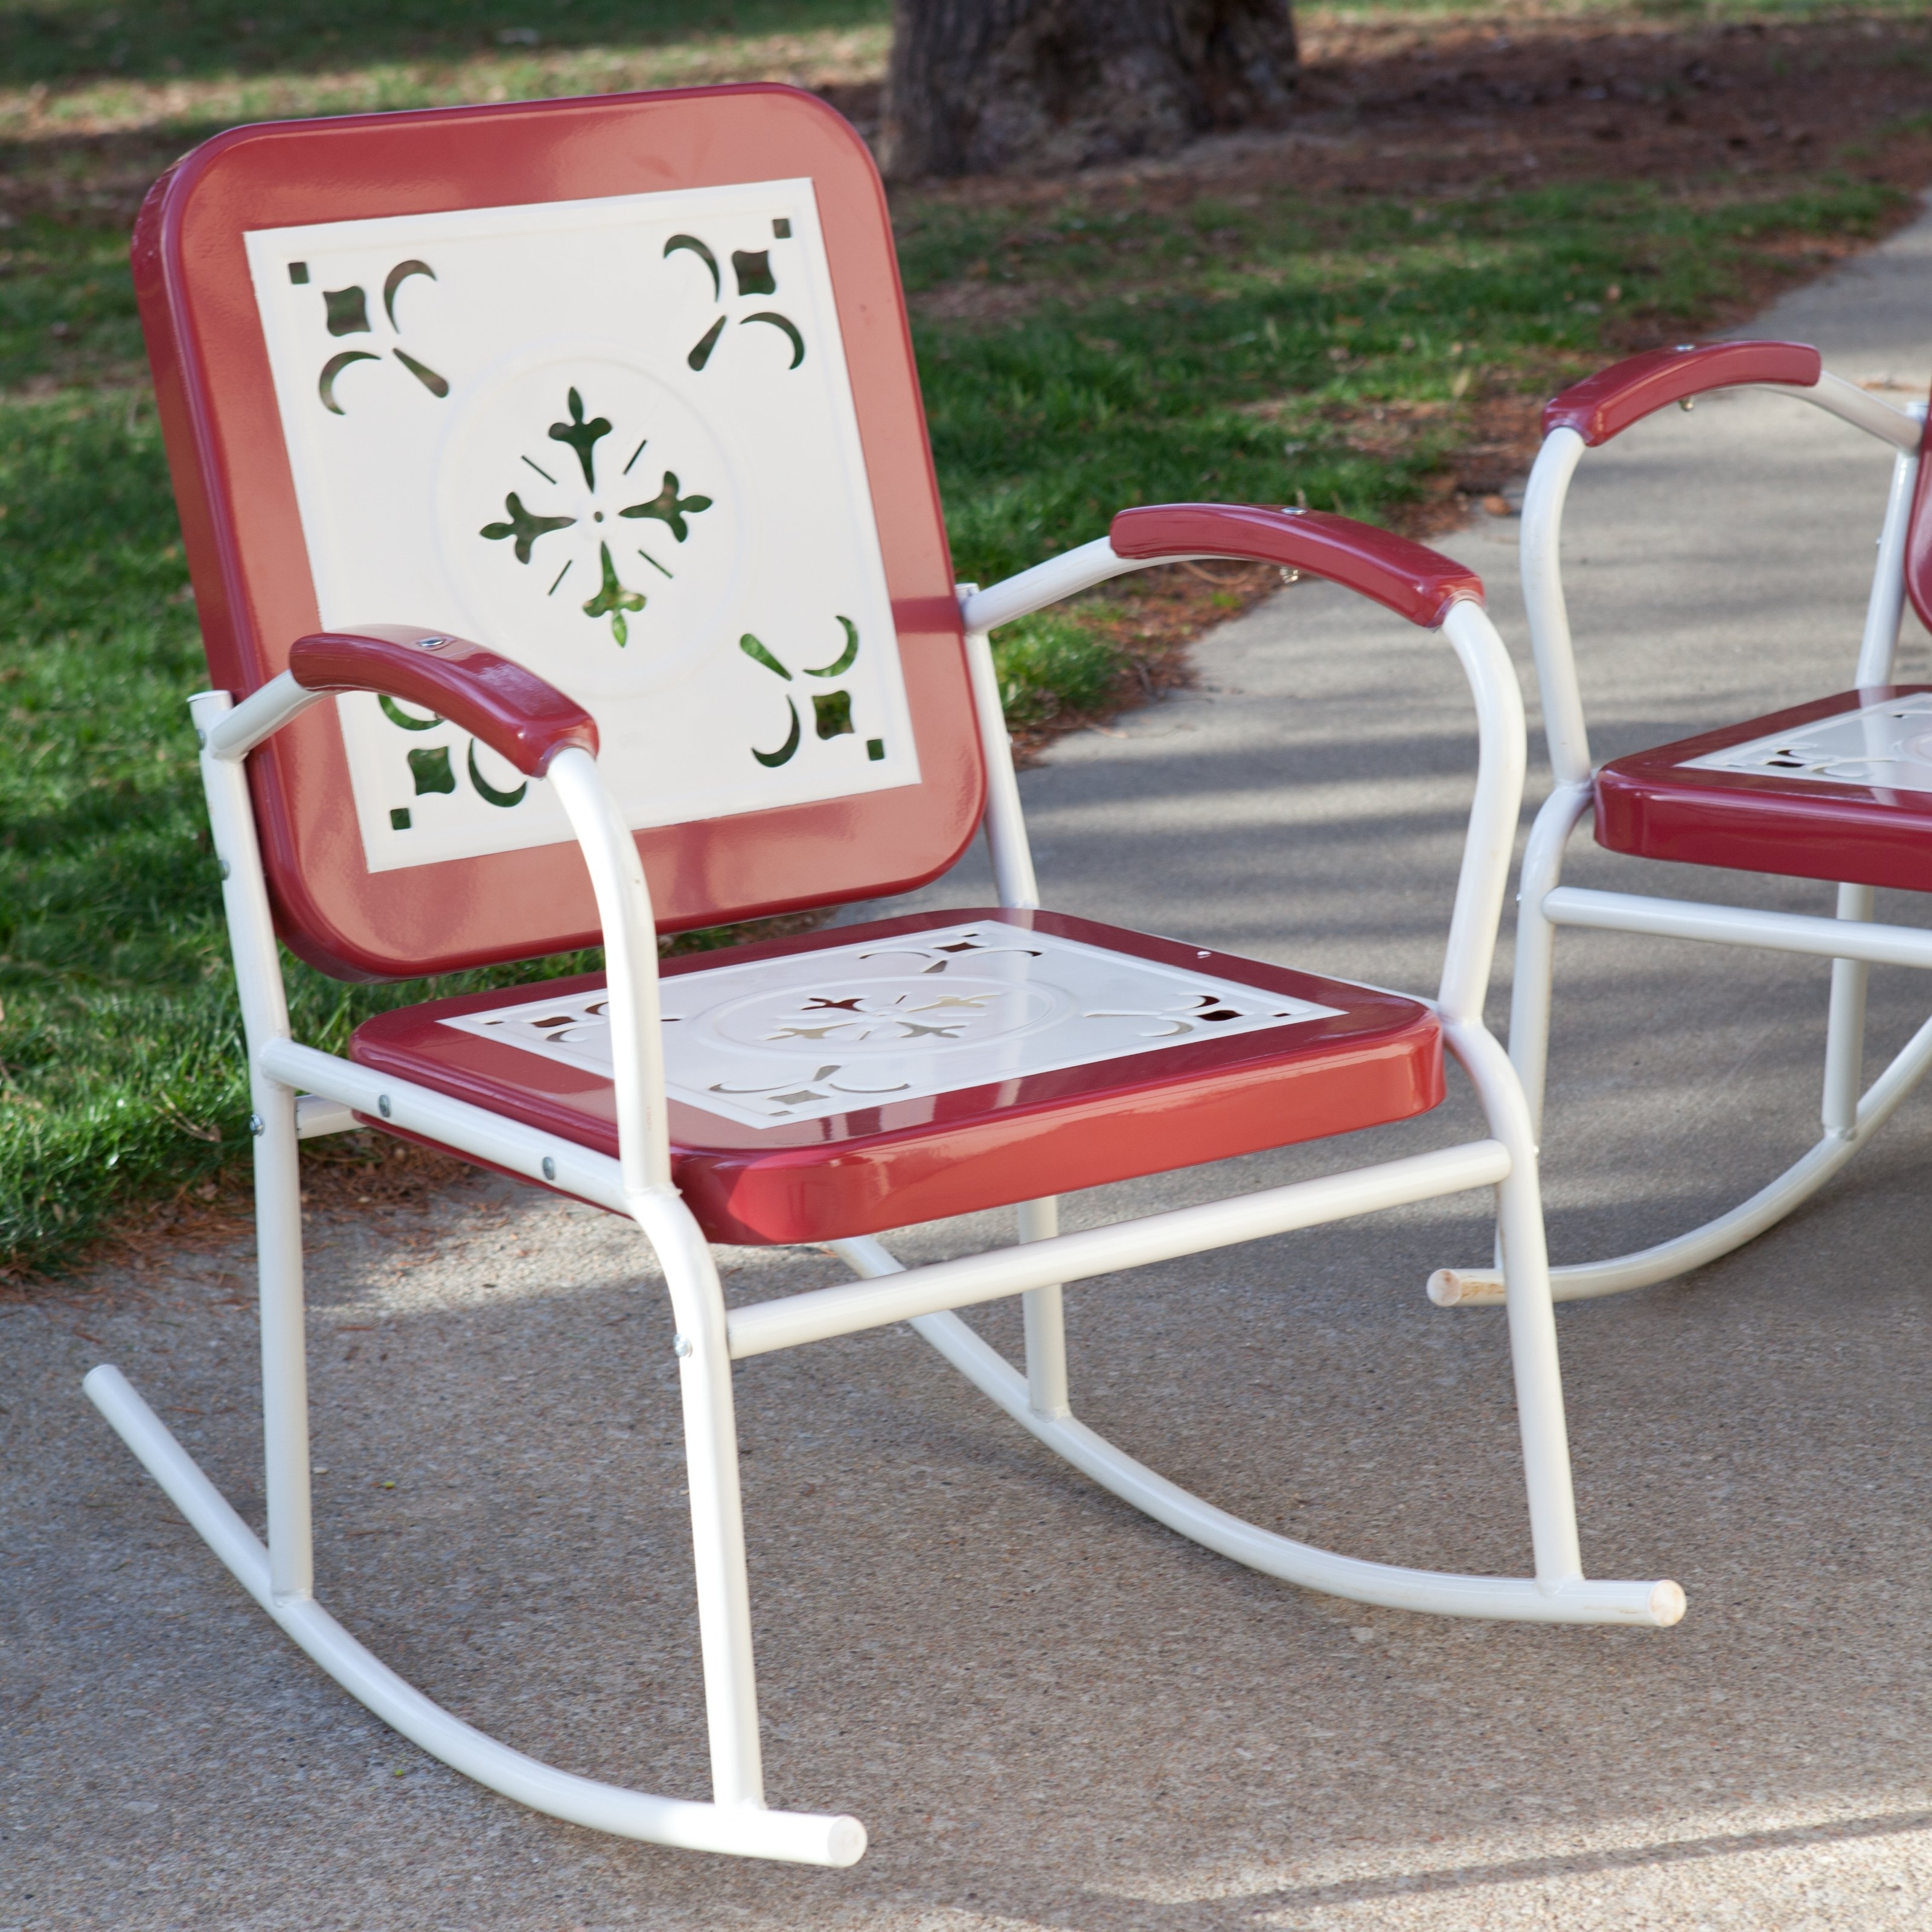 Preferred Coral Coast Paradise Cove Retro Metal Rocking Chairs – Set Of 2 Intended For Retro Rocking Chairs (View 5 of 15)